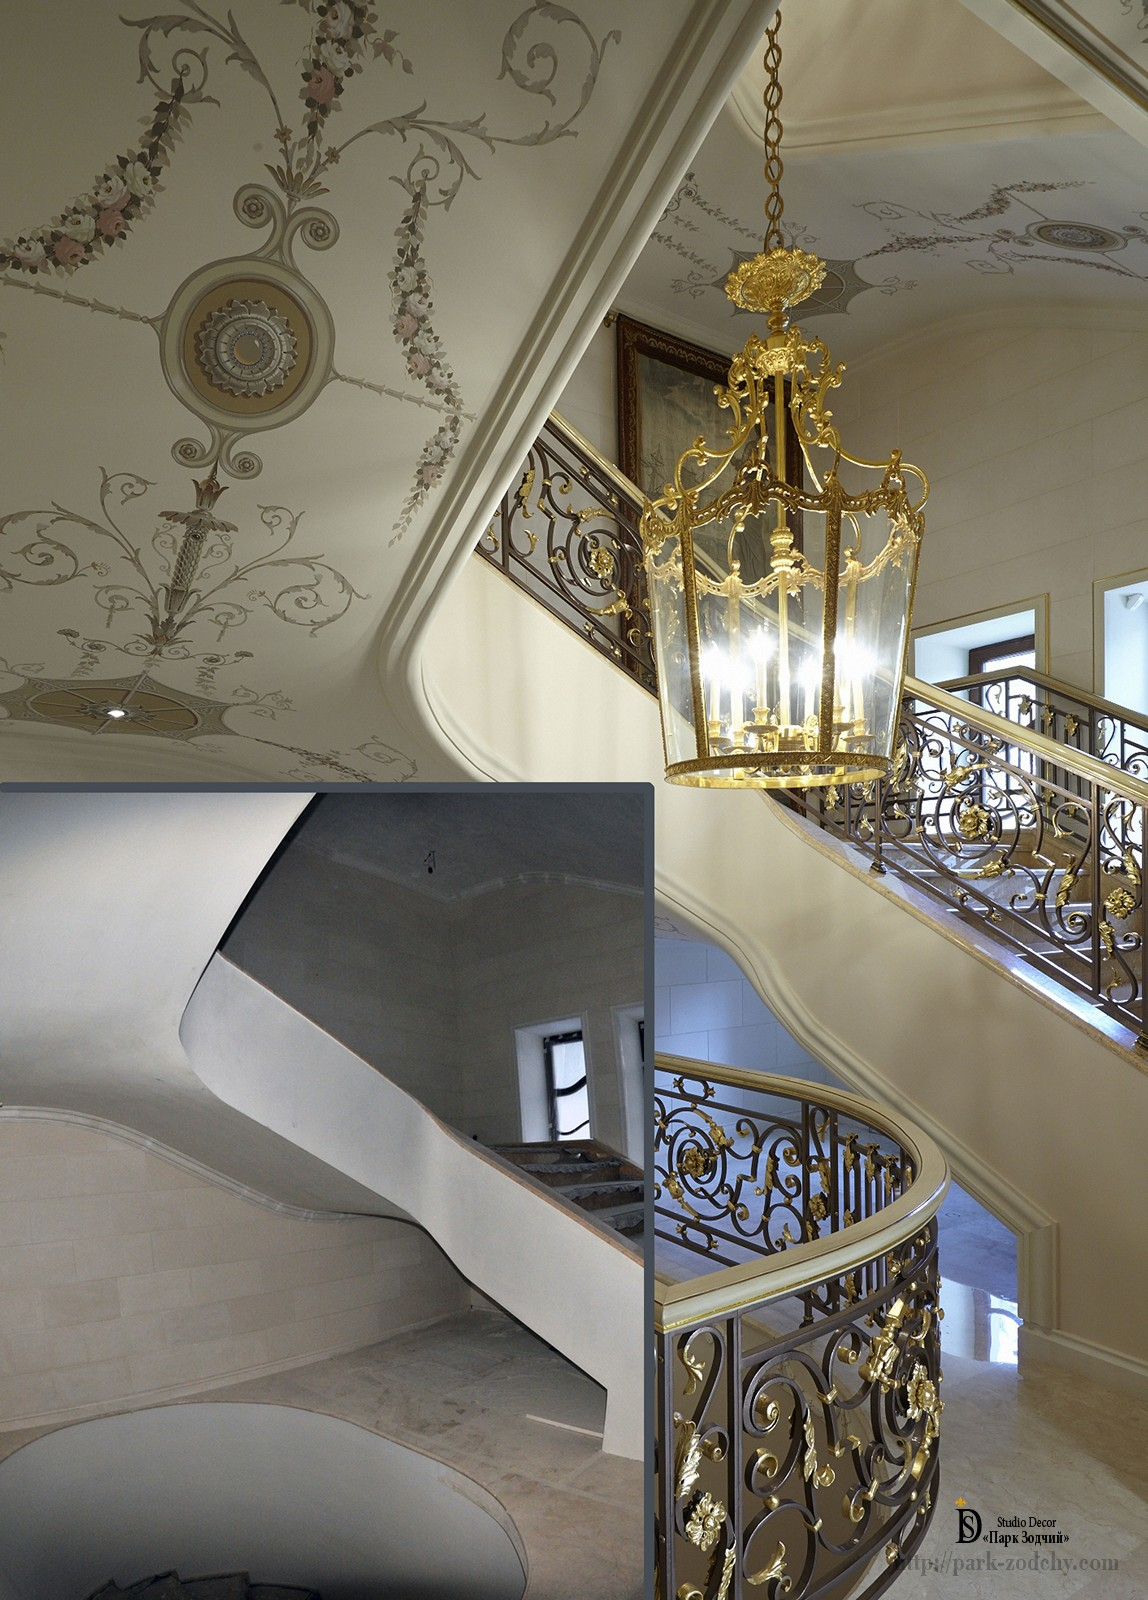 Sequence of decorating the stairs